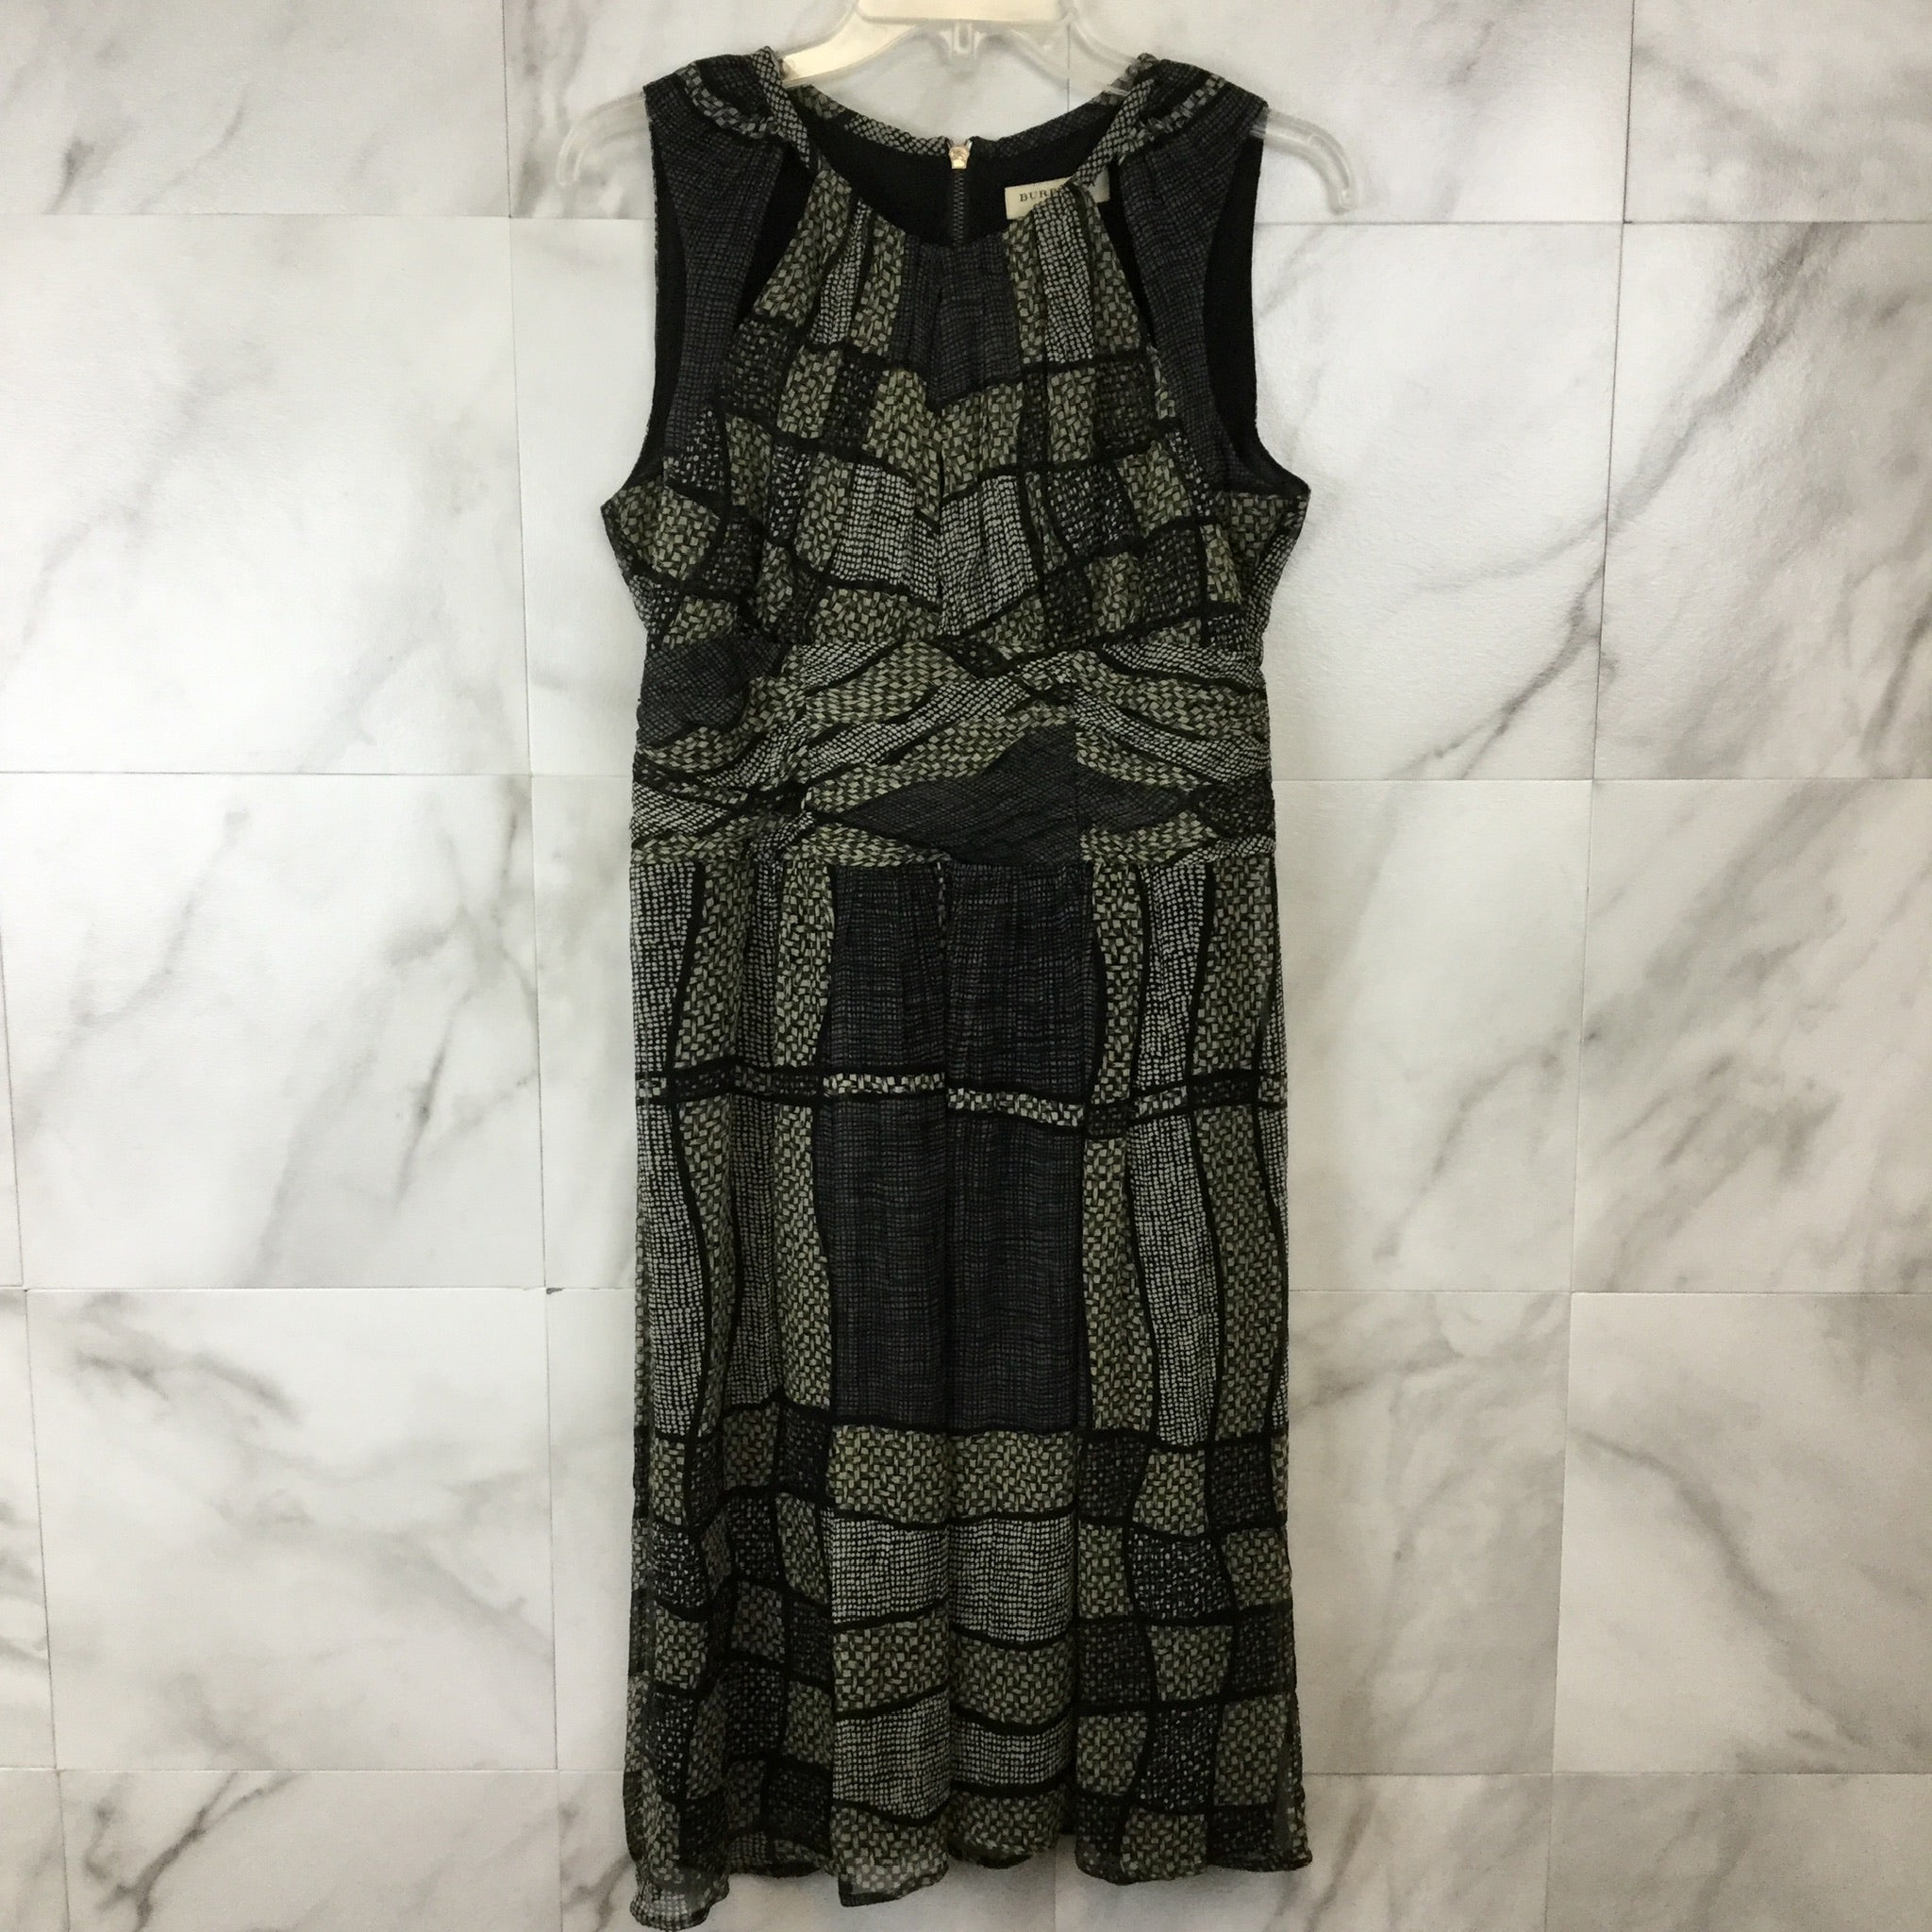 Burberry Geometric Print Silk Dress - size 8